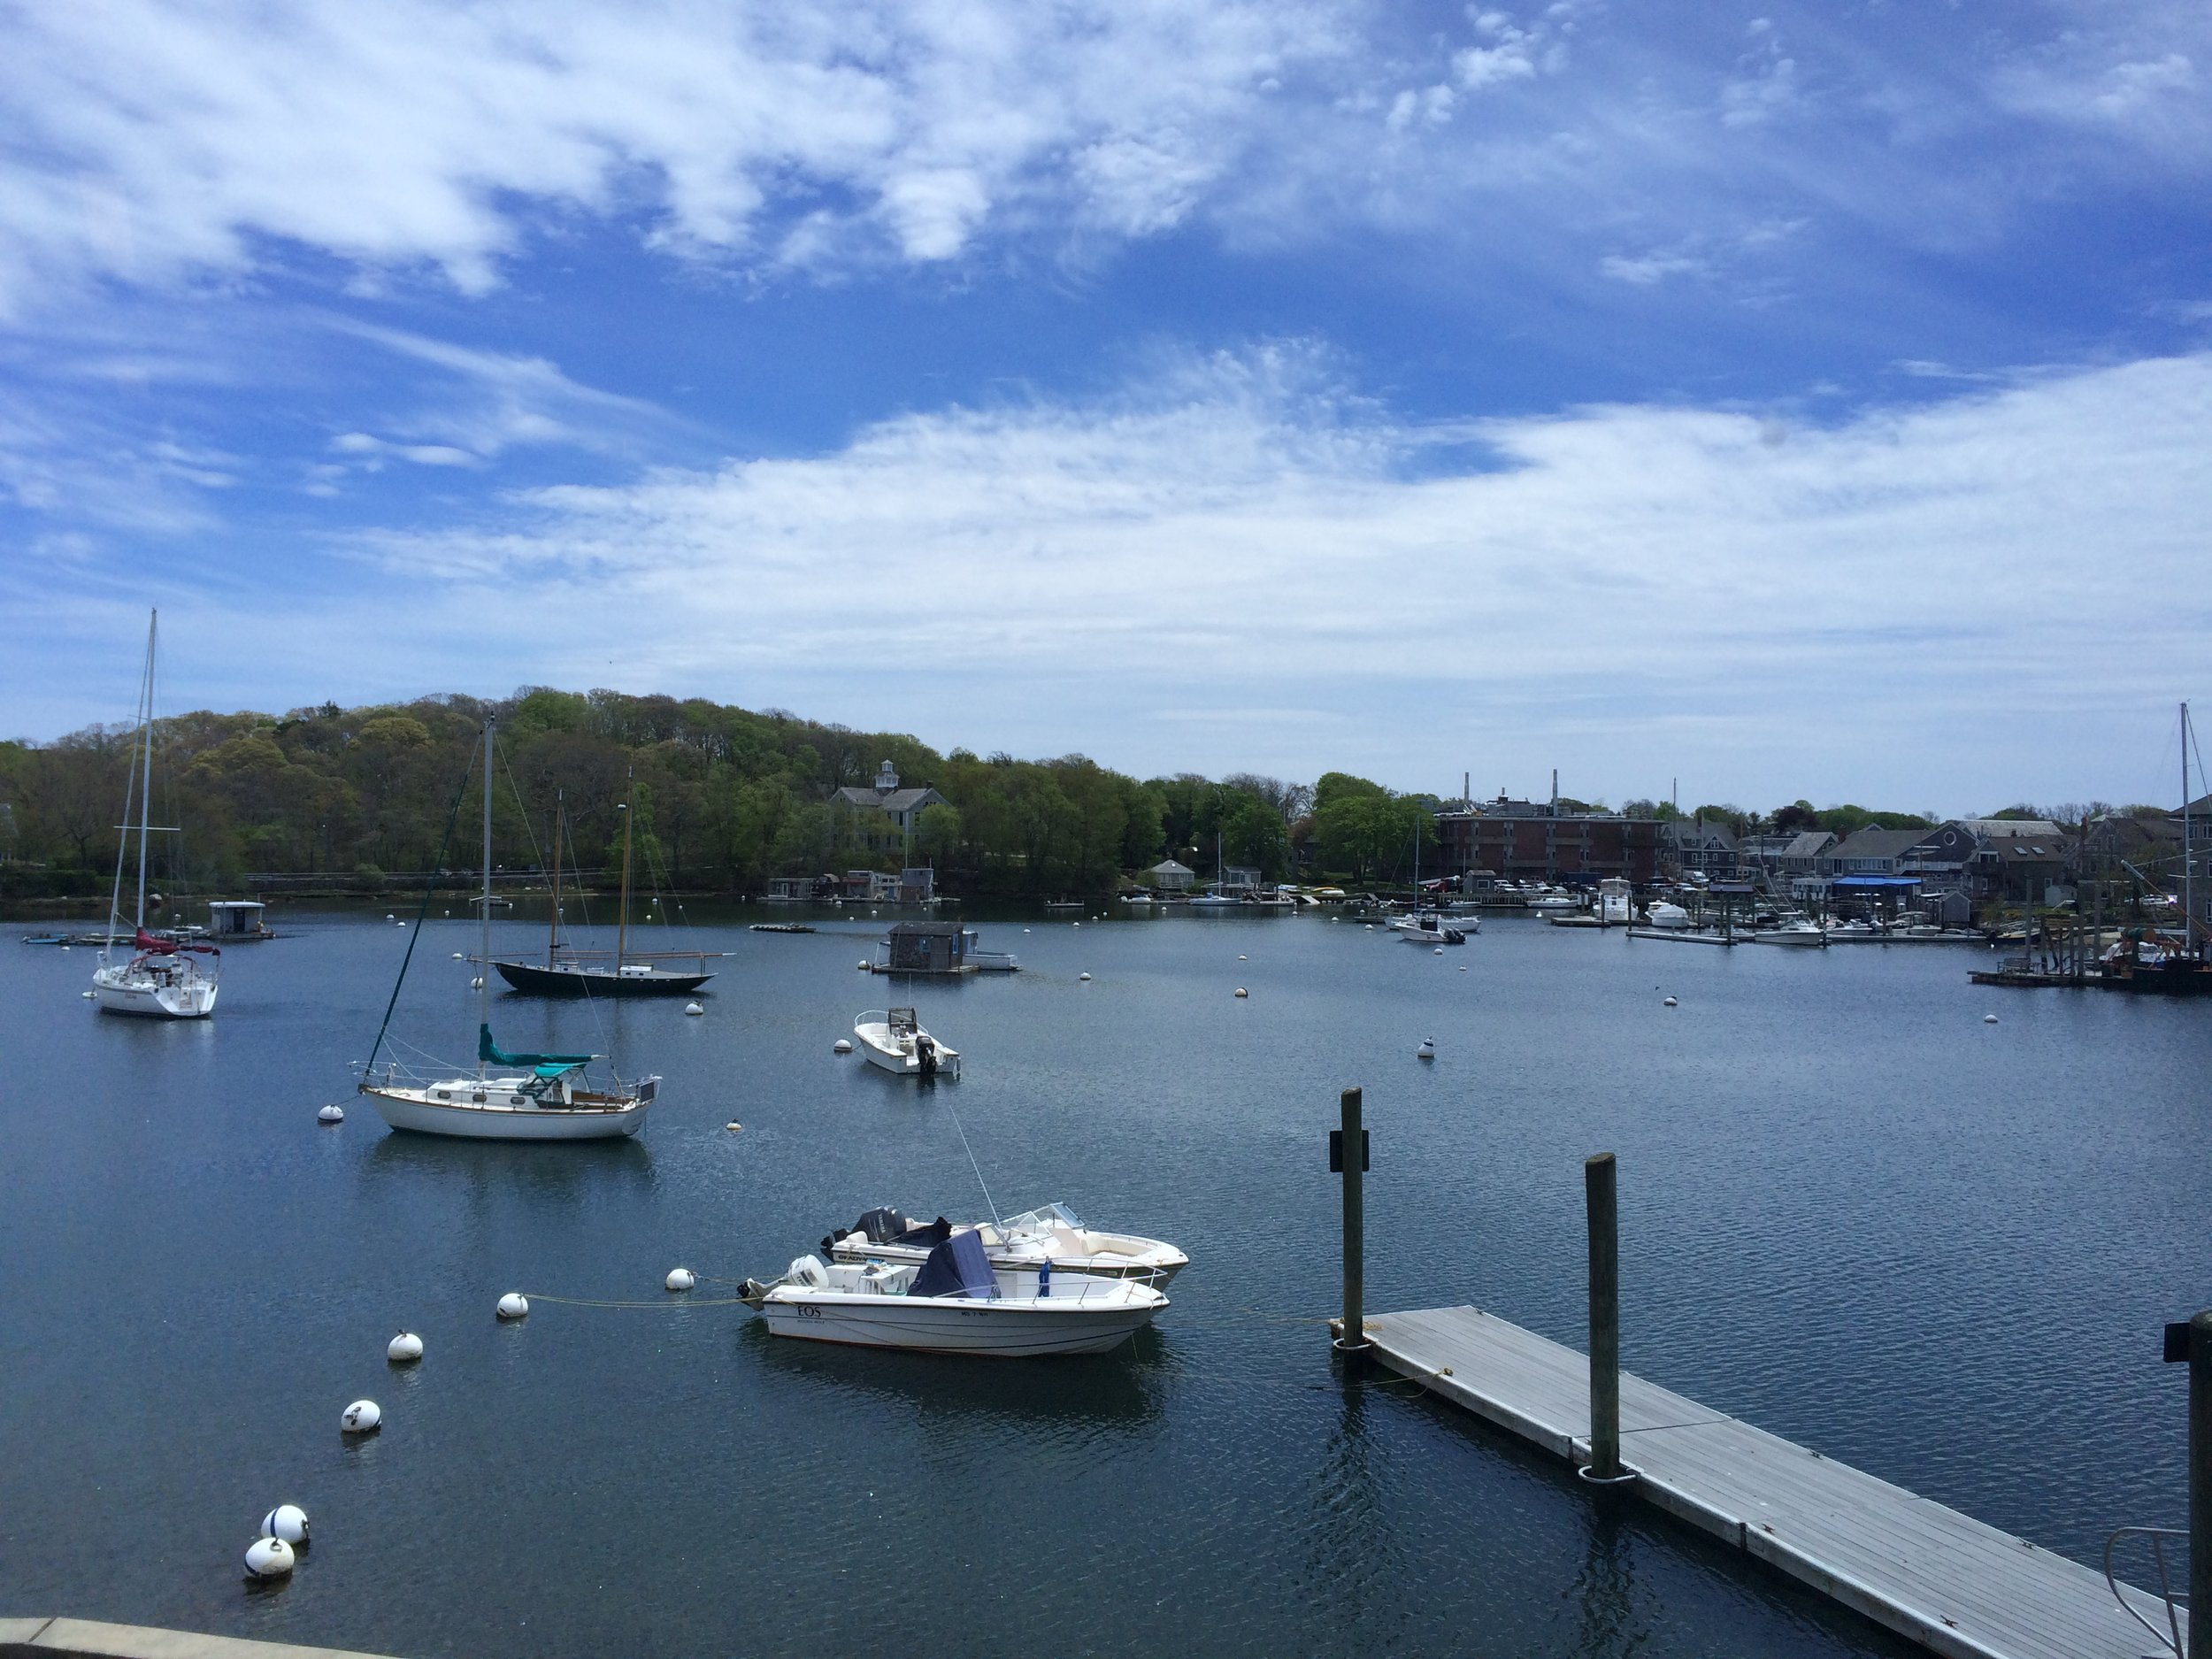 """Chris taught """"Spermatogenesis II"""" in the 2016 Frontiers in Reproduction (FIR) course at the Marine Biological Laboratory at Wood's Hole, MA. This is aview of beautiful Eel Pond from just outside the cafeteria..."""